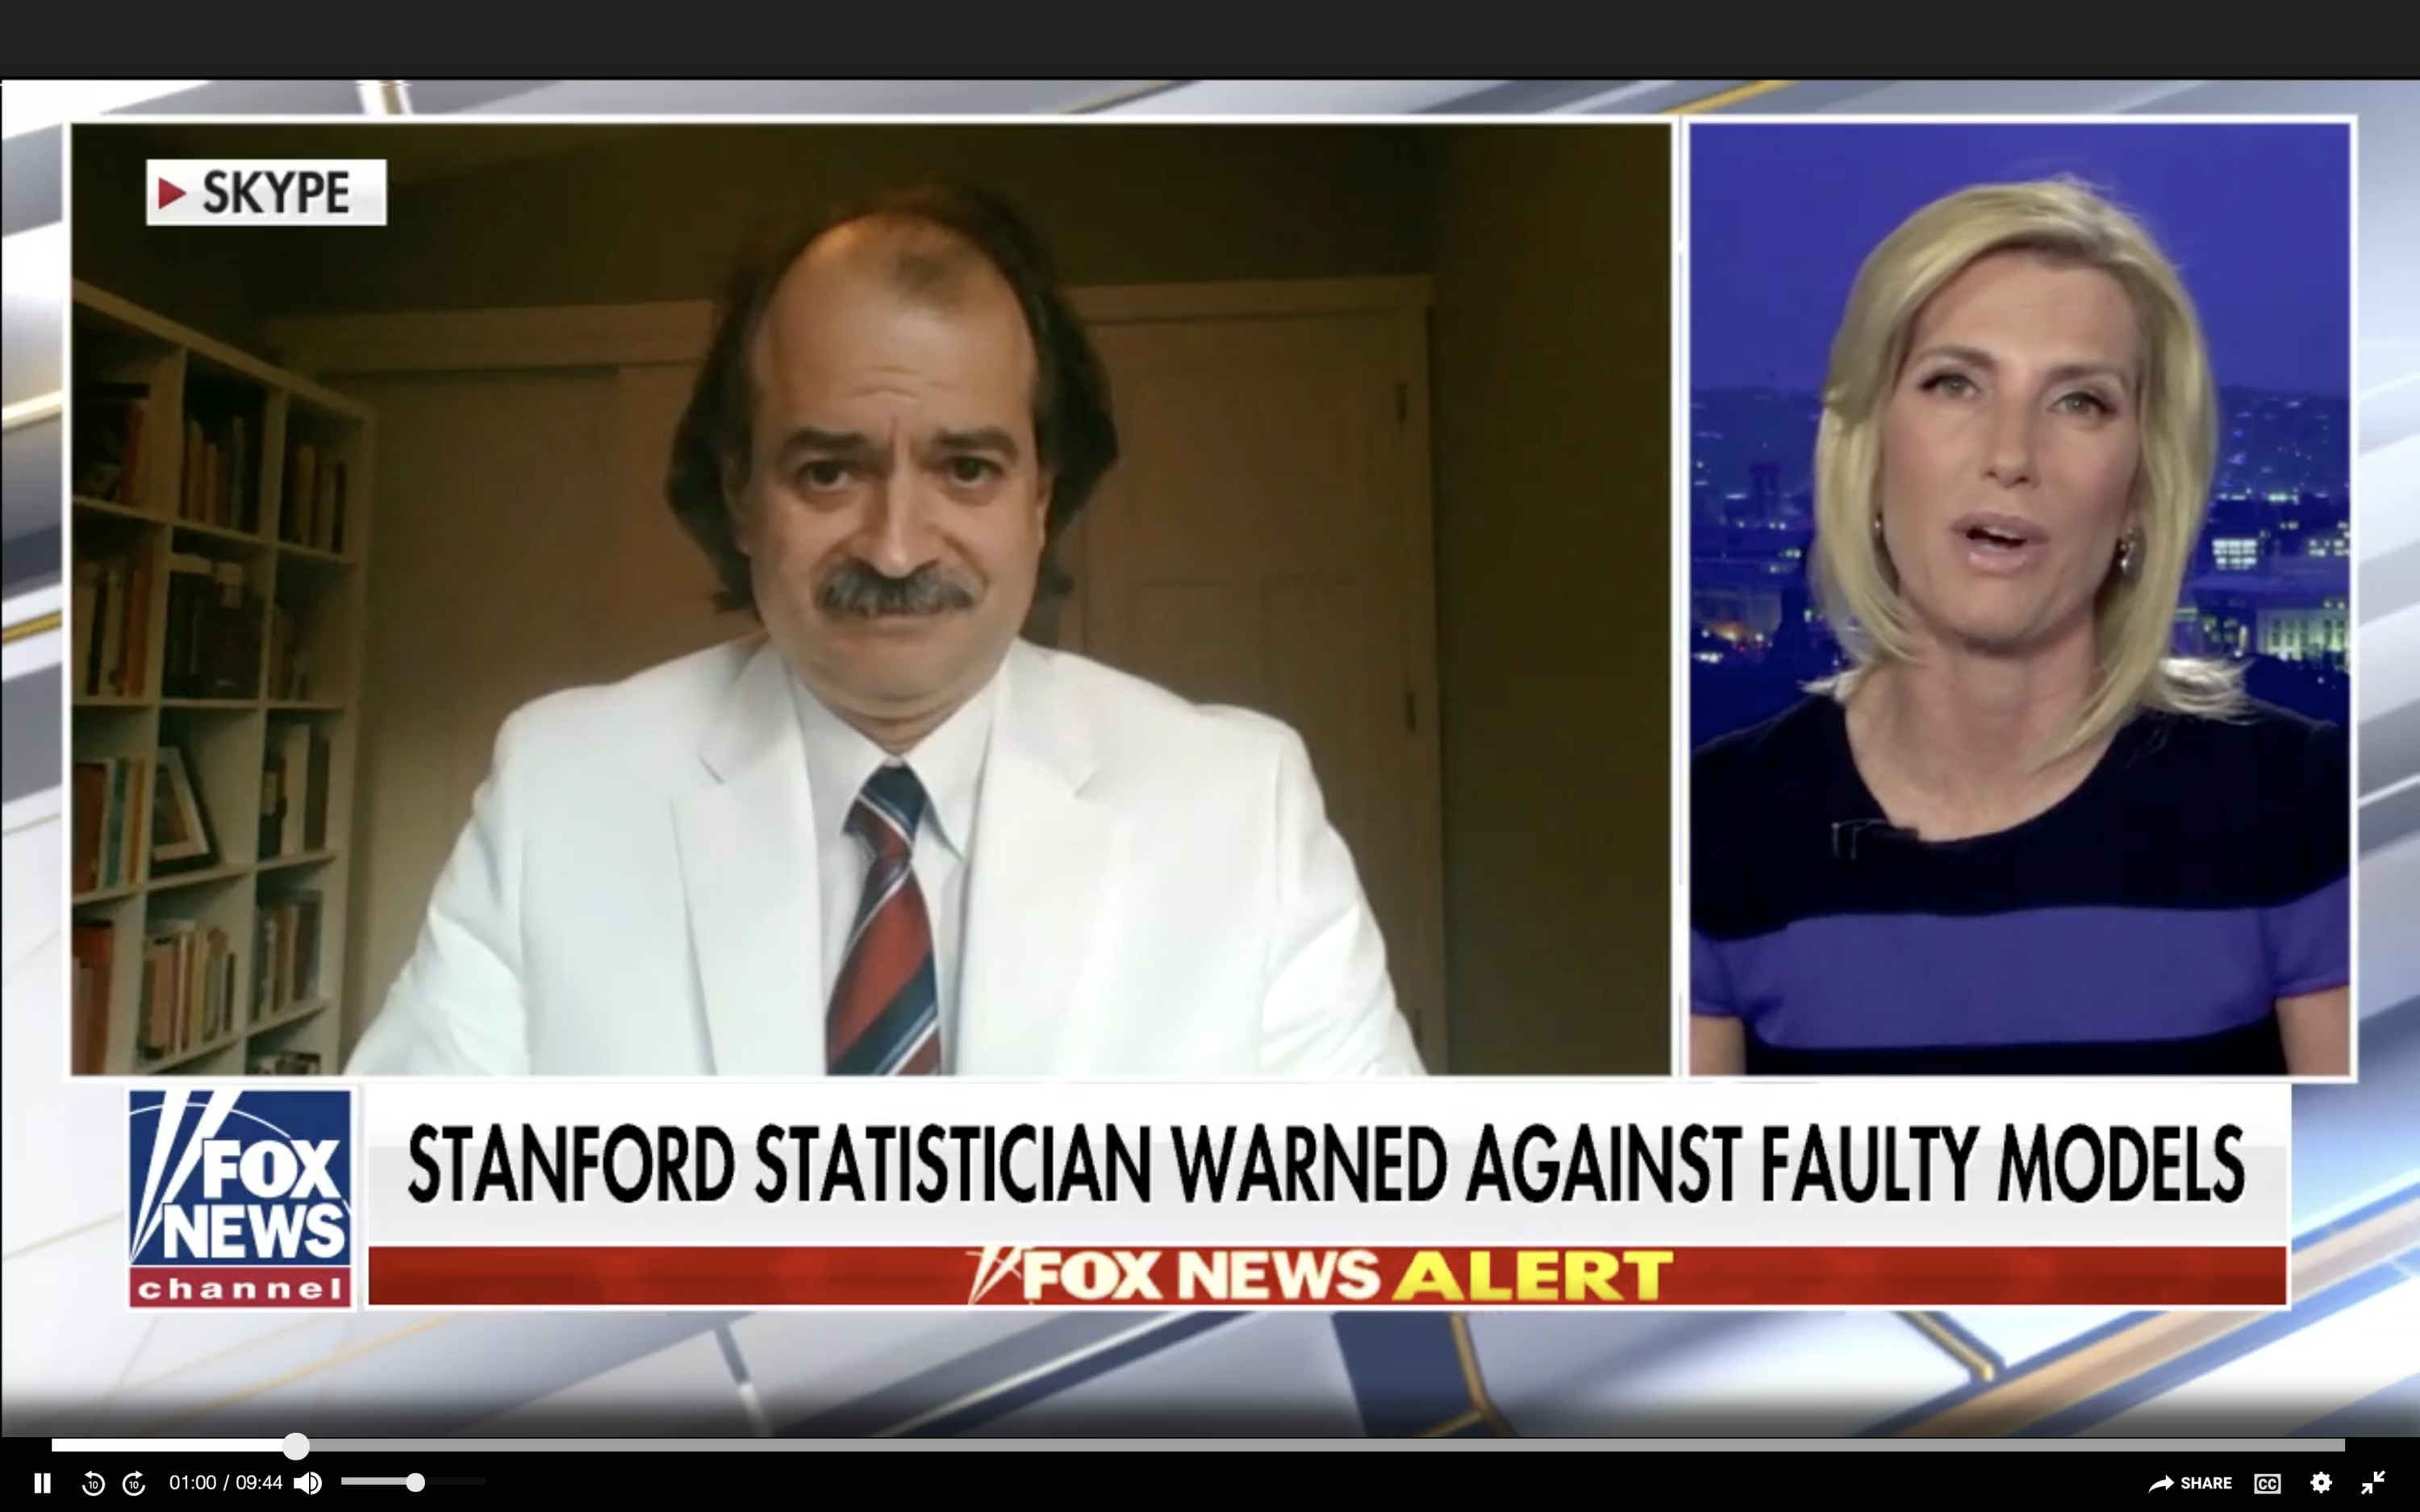 John Ioannidis and Laura Ingraham on a television screen